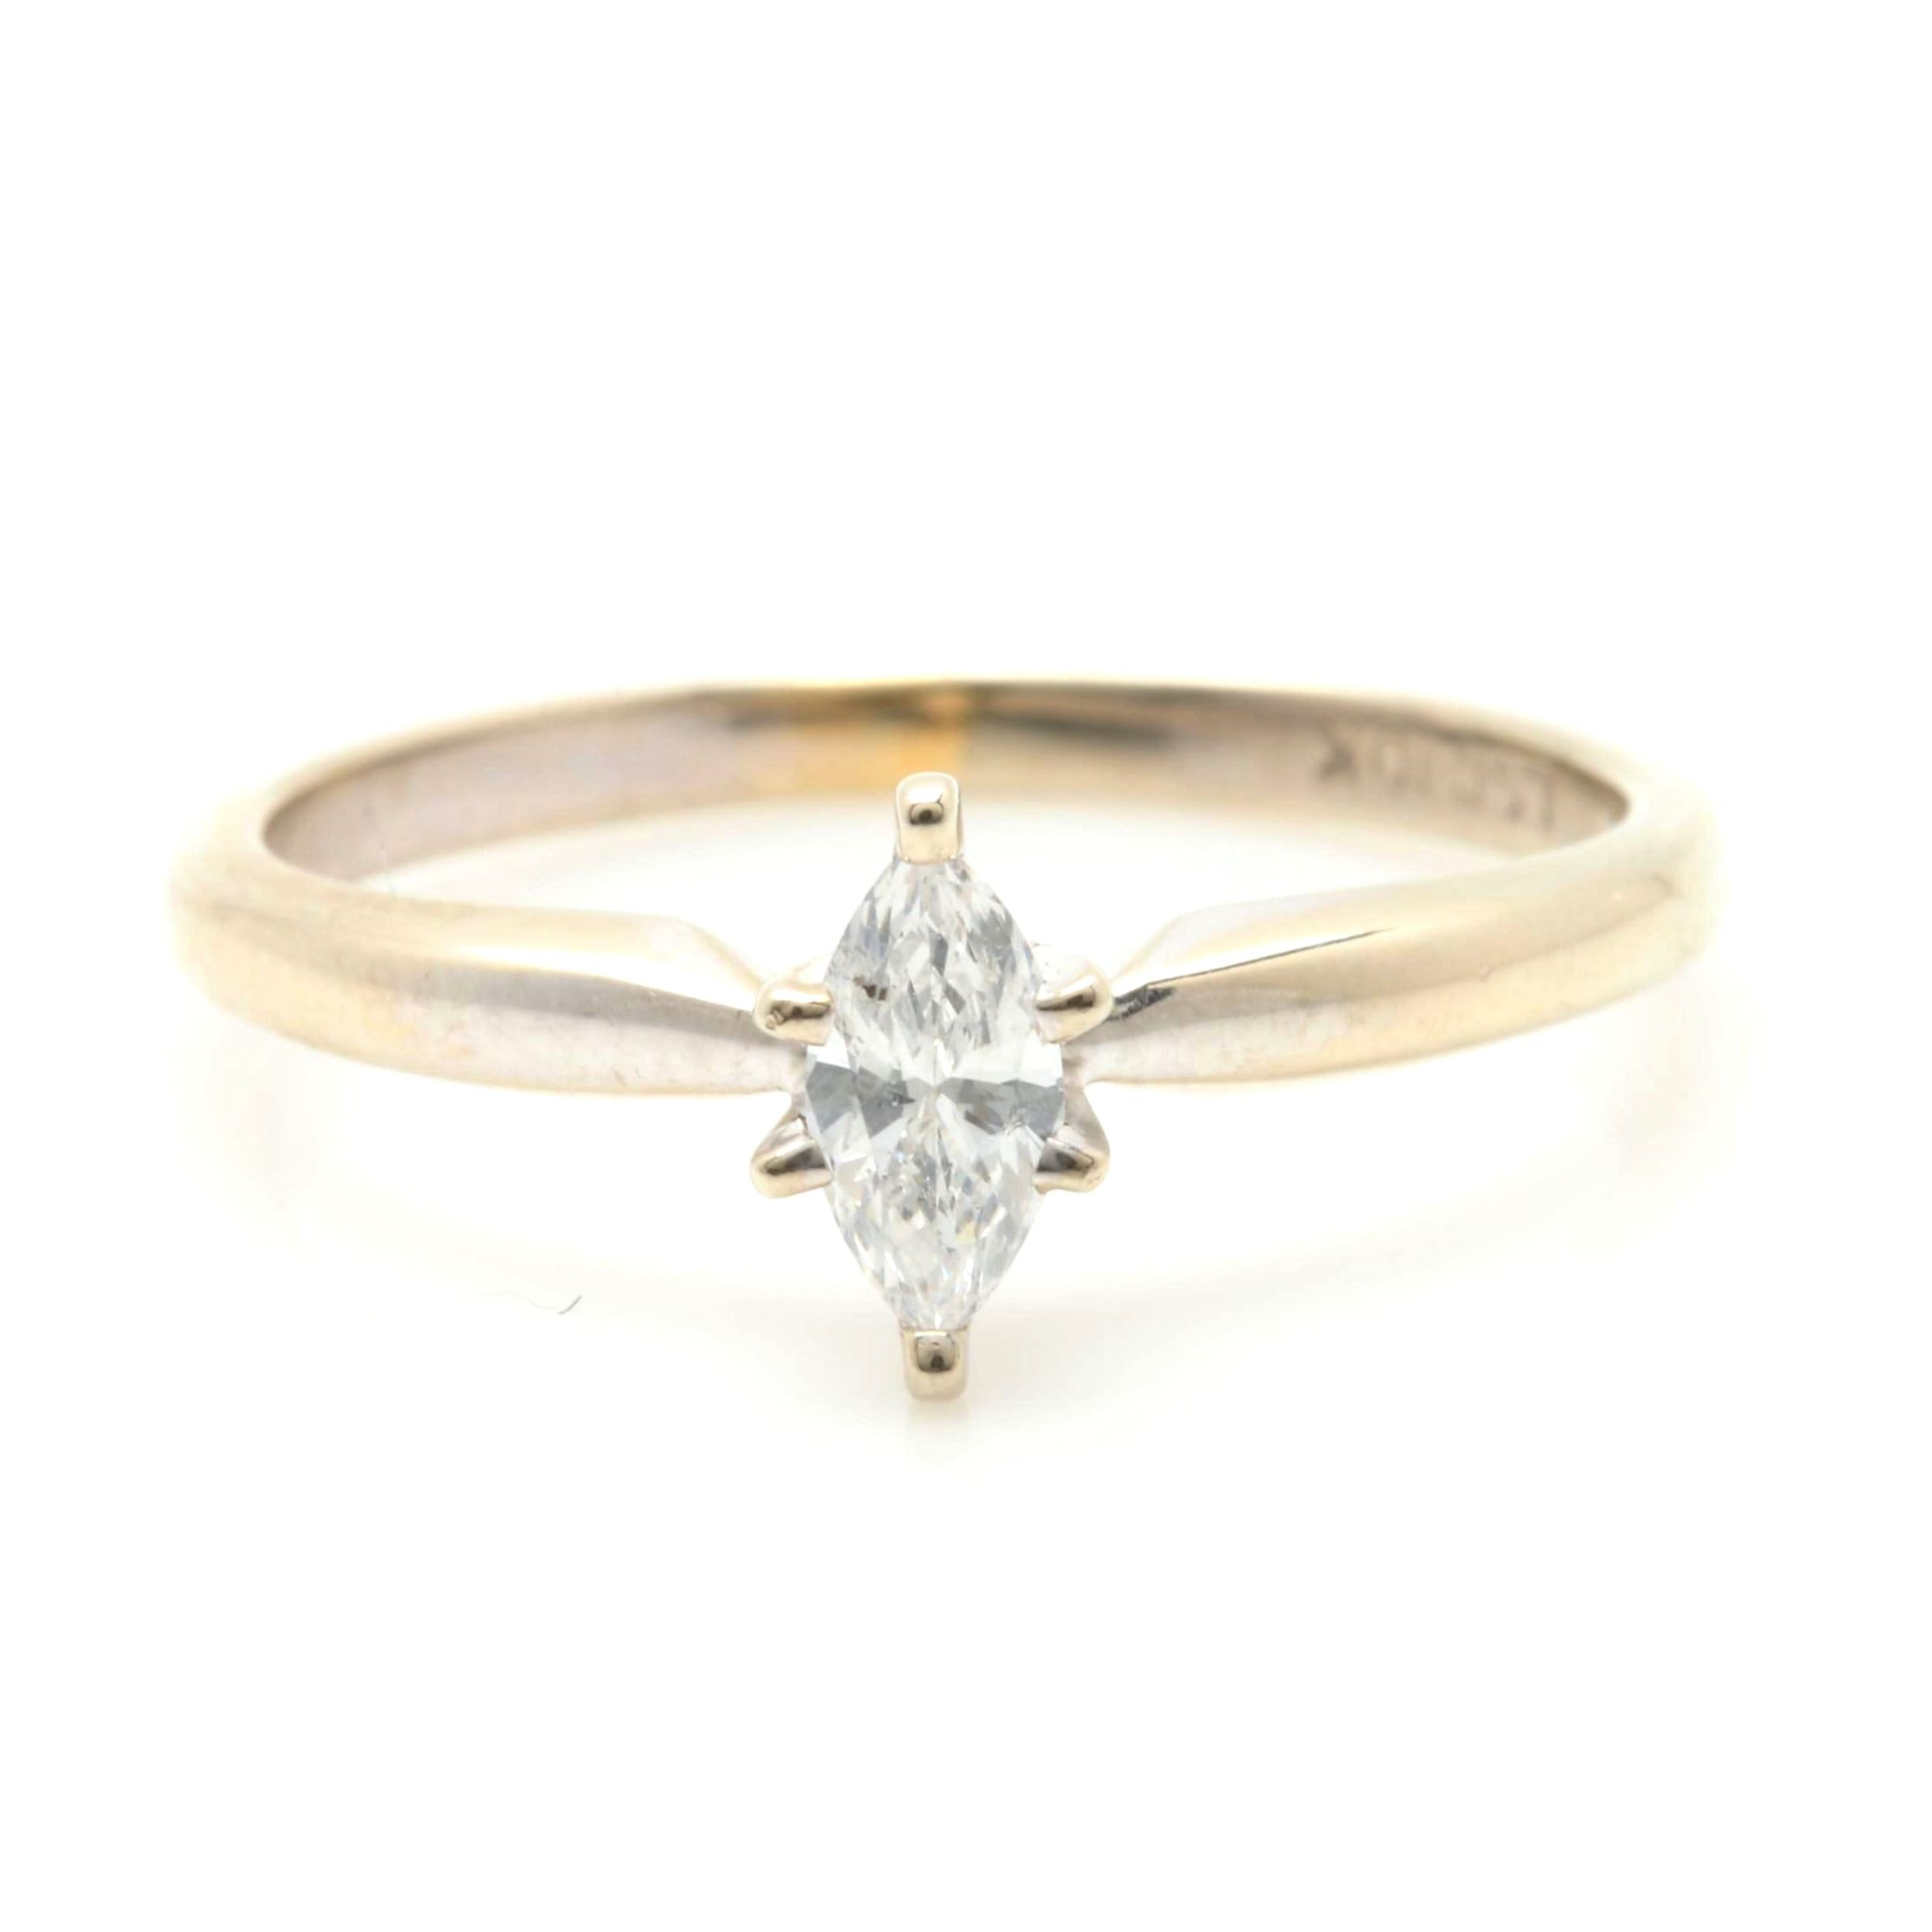 10K White Gold Diamond Solitaire Ring